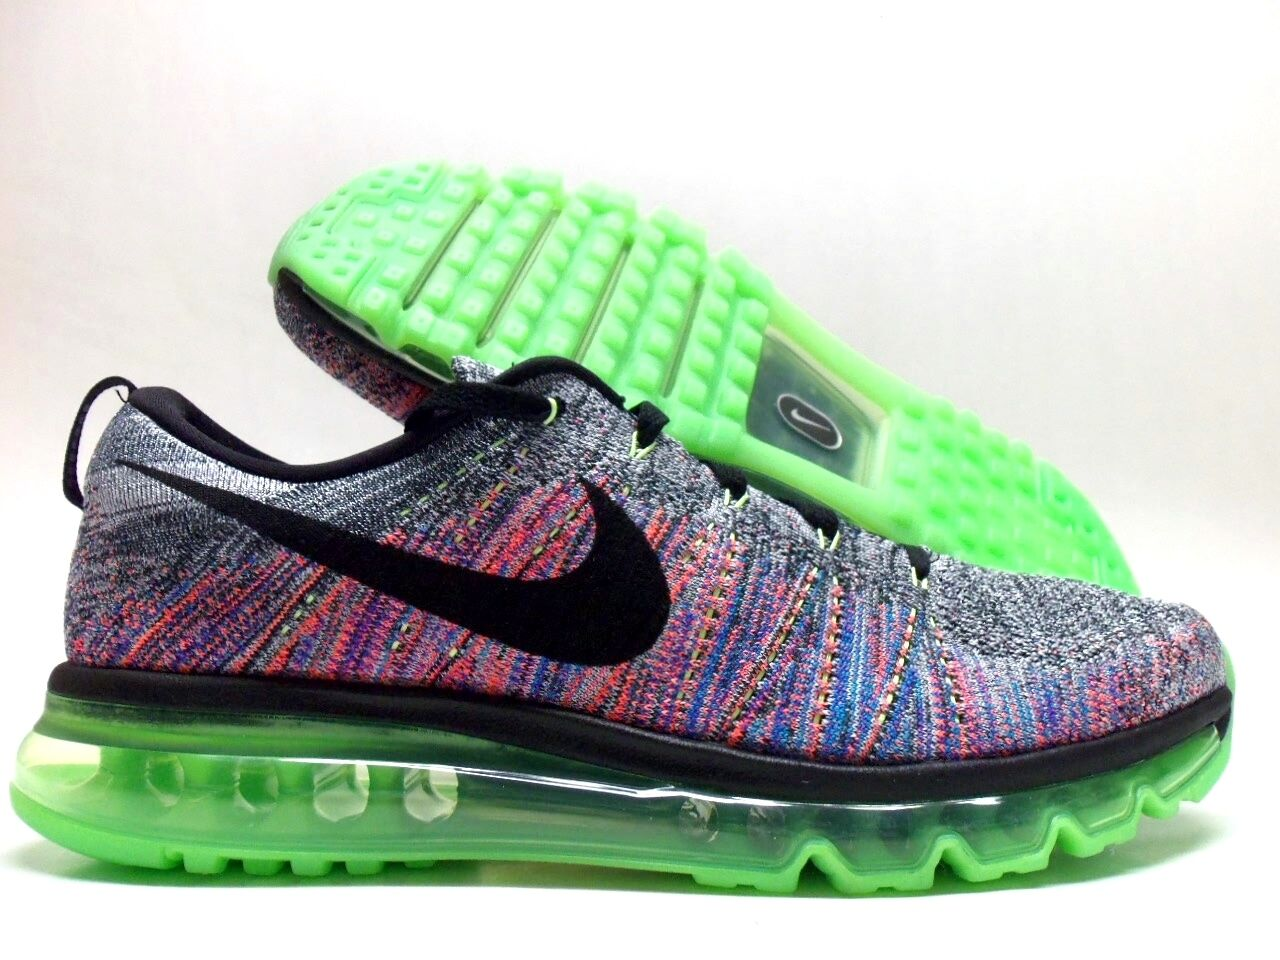 a01b49725a9d Nike Men Flyknit Max Multi-color White black-ghost Green Sz 14 ...